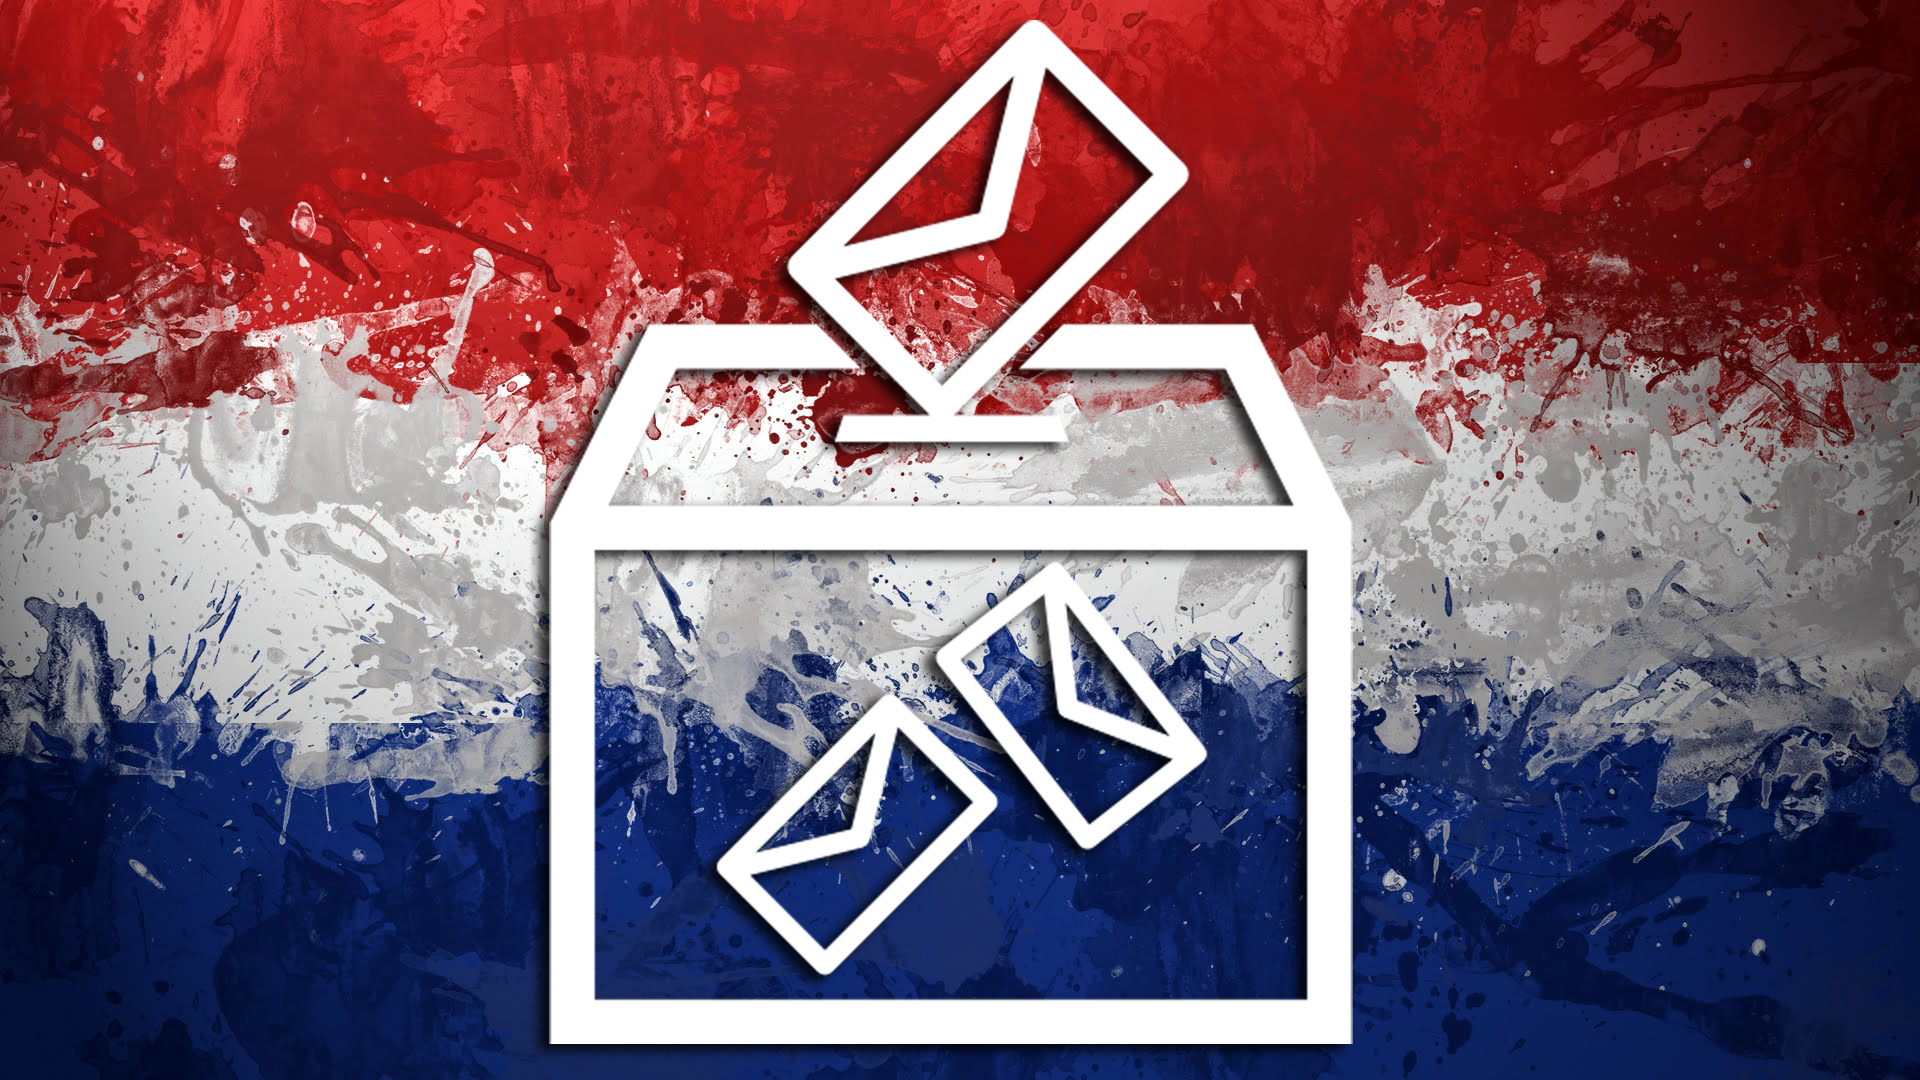 After the election: A call to prayer for the Netherlands